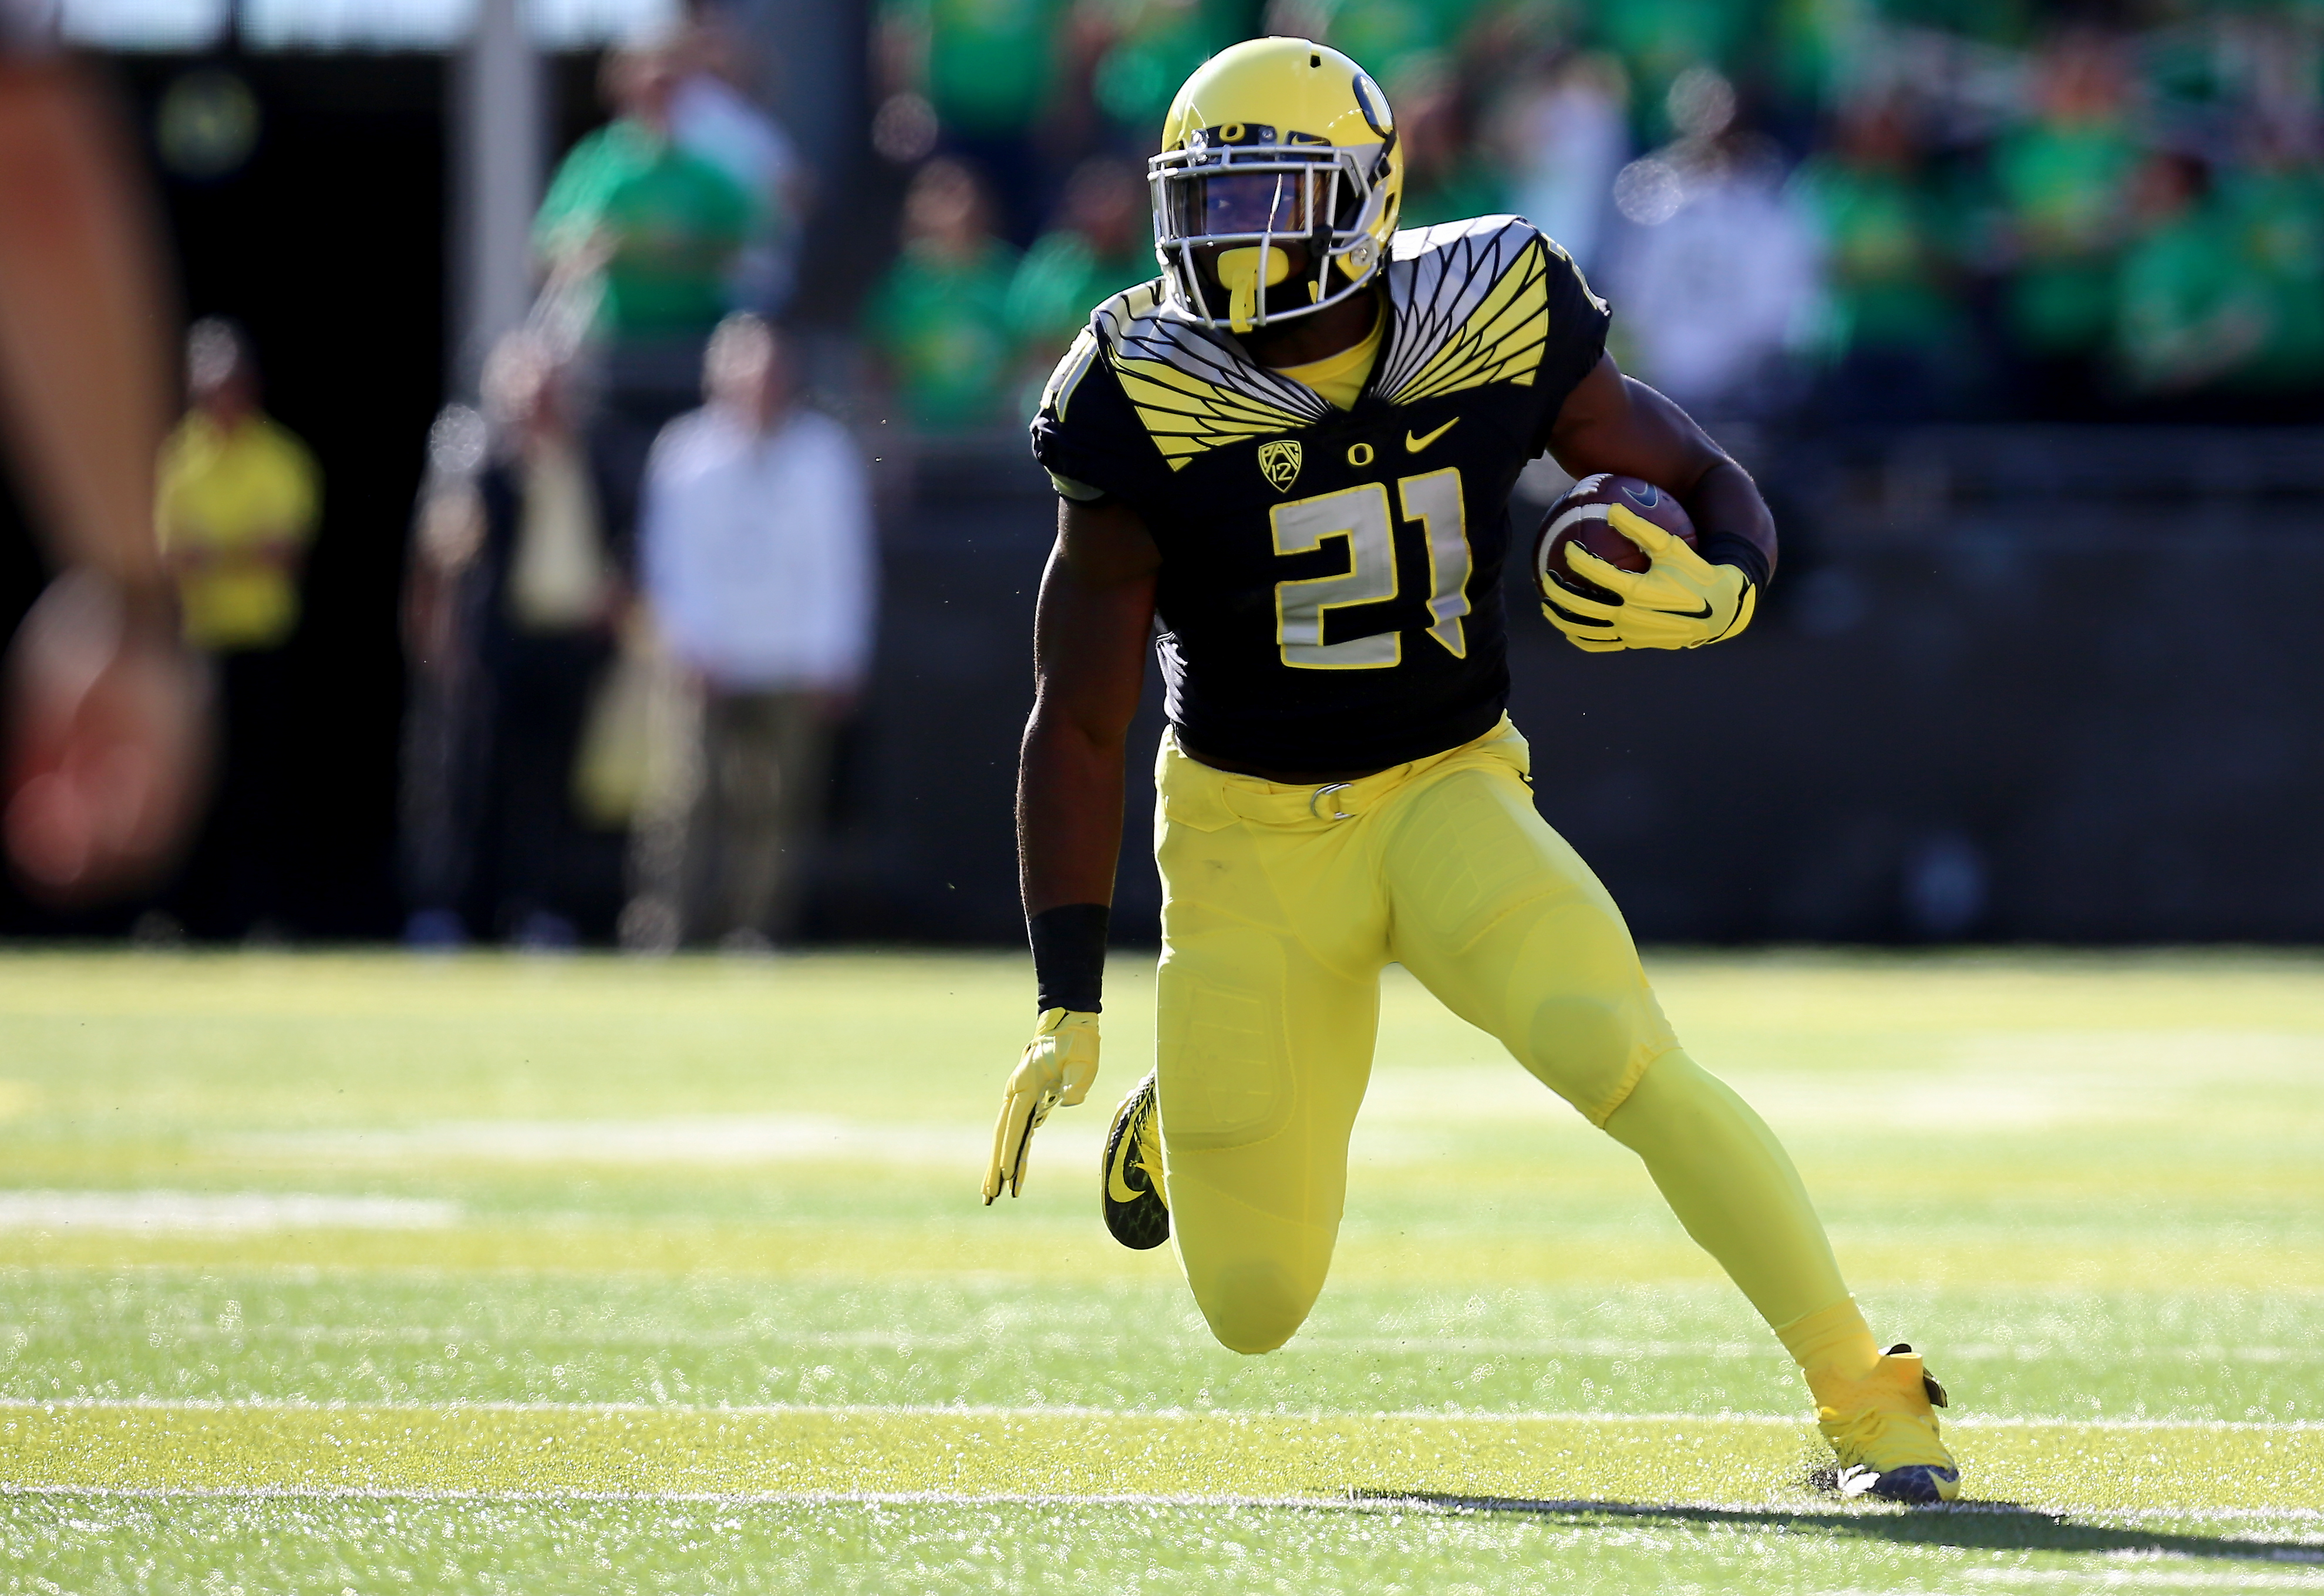 FILE - In this Sept. 5, 2015, file photo, Oregon running back Royce Freeman runs during the first quarter of an NCAA college football game against Eastern Washington, Saturday in Eugene, Ore.   Freeman ran for a career-high 180 yards and three touchdowns